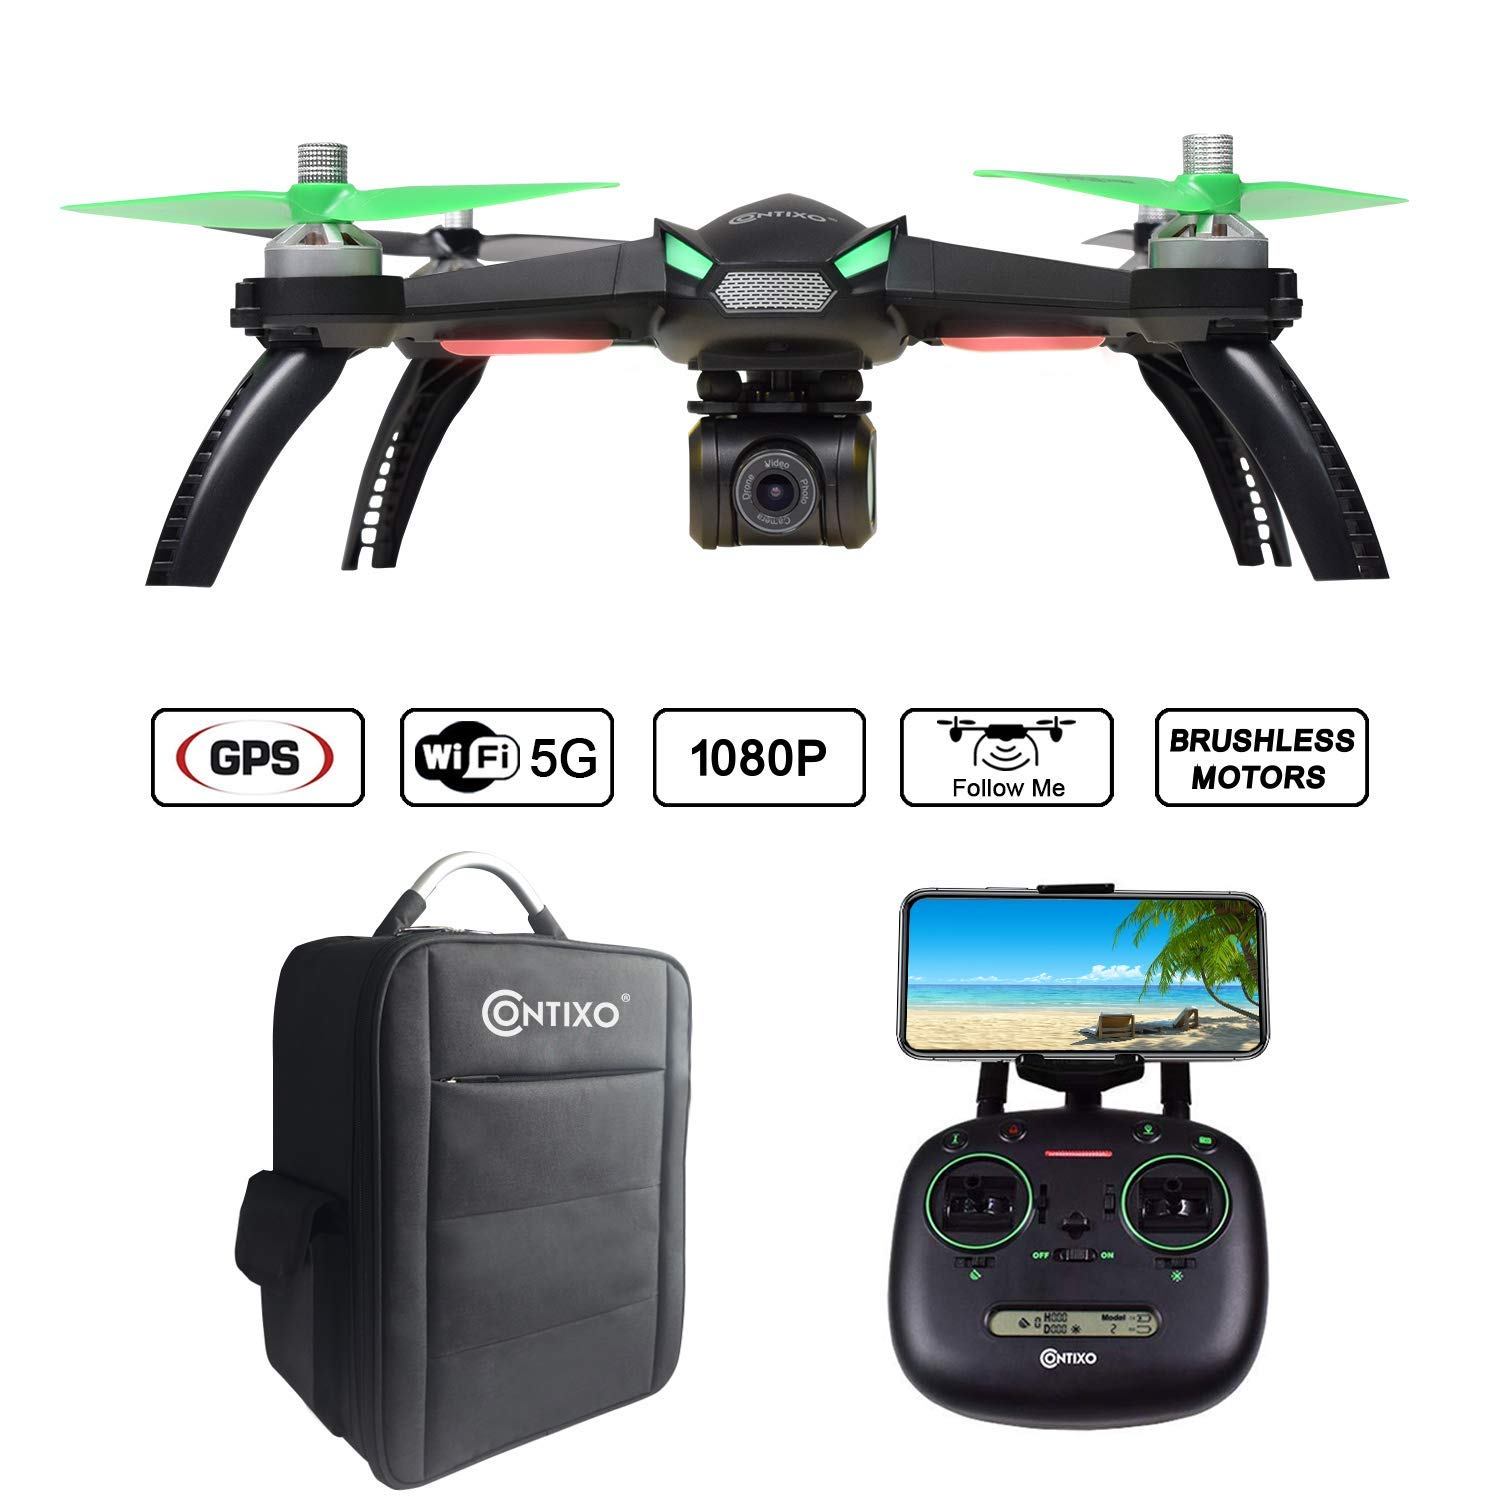 Contixo F20 RC Remote App Controlled Quadcopter Drone | 1080p HD WiFi Camera, Follow Me, Auto Hover, Altitude Hold, GPS, 1-Key Takeoff/Landing, Auto Return Includes Custom Storage Carrying Backpack